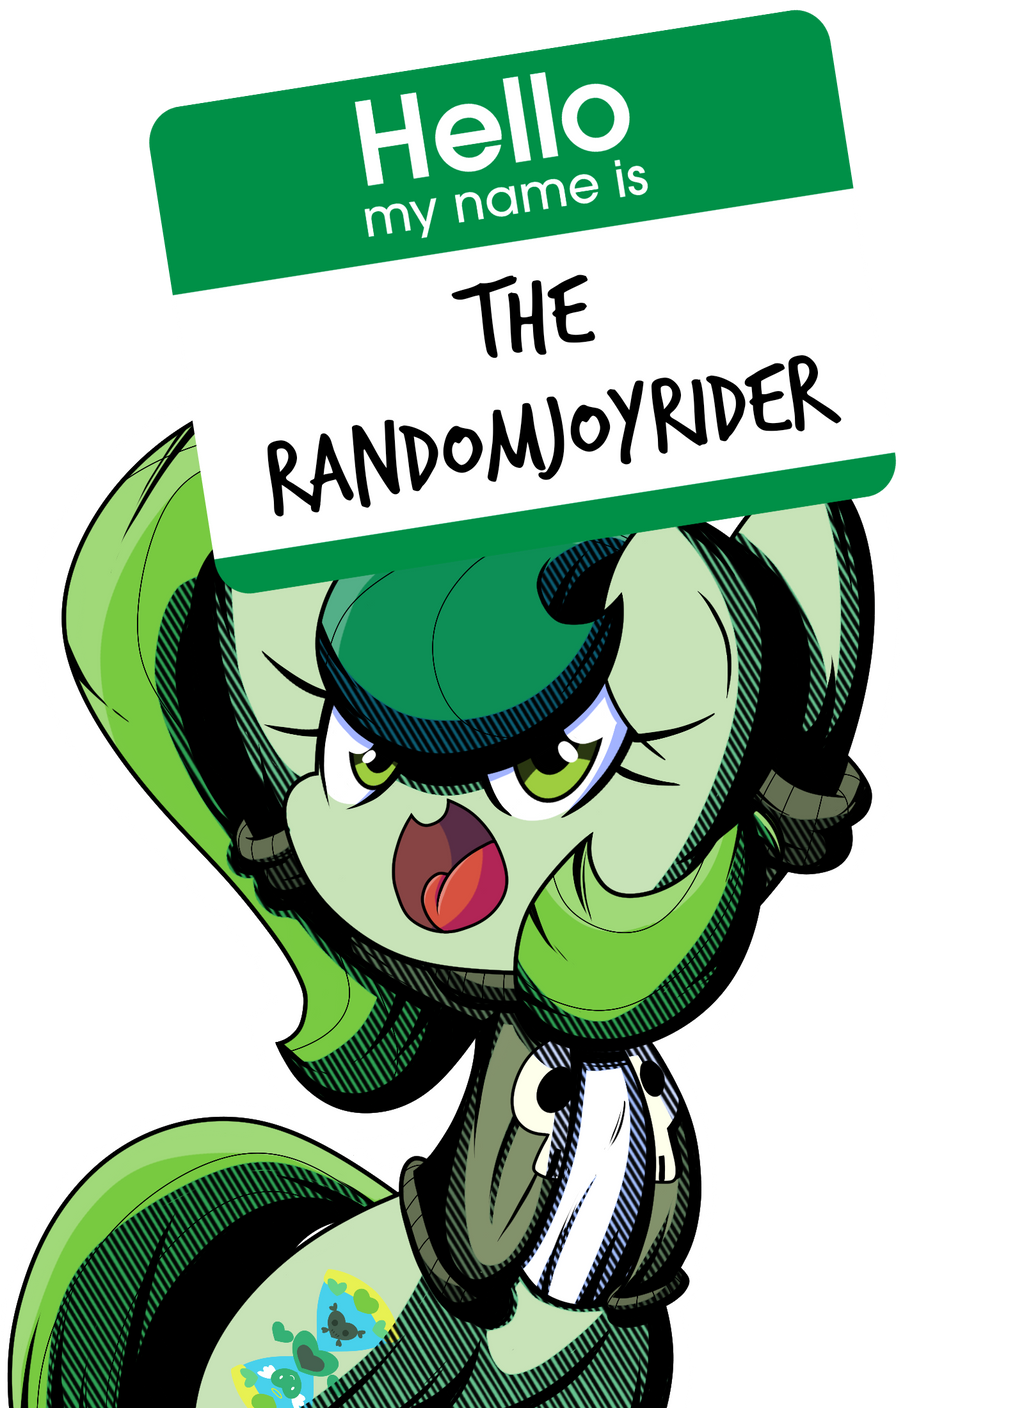 TheRandomJoyrider's Profile Picture